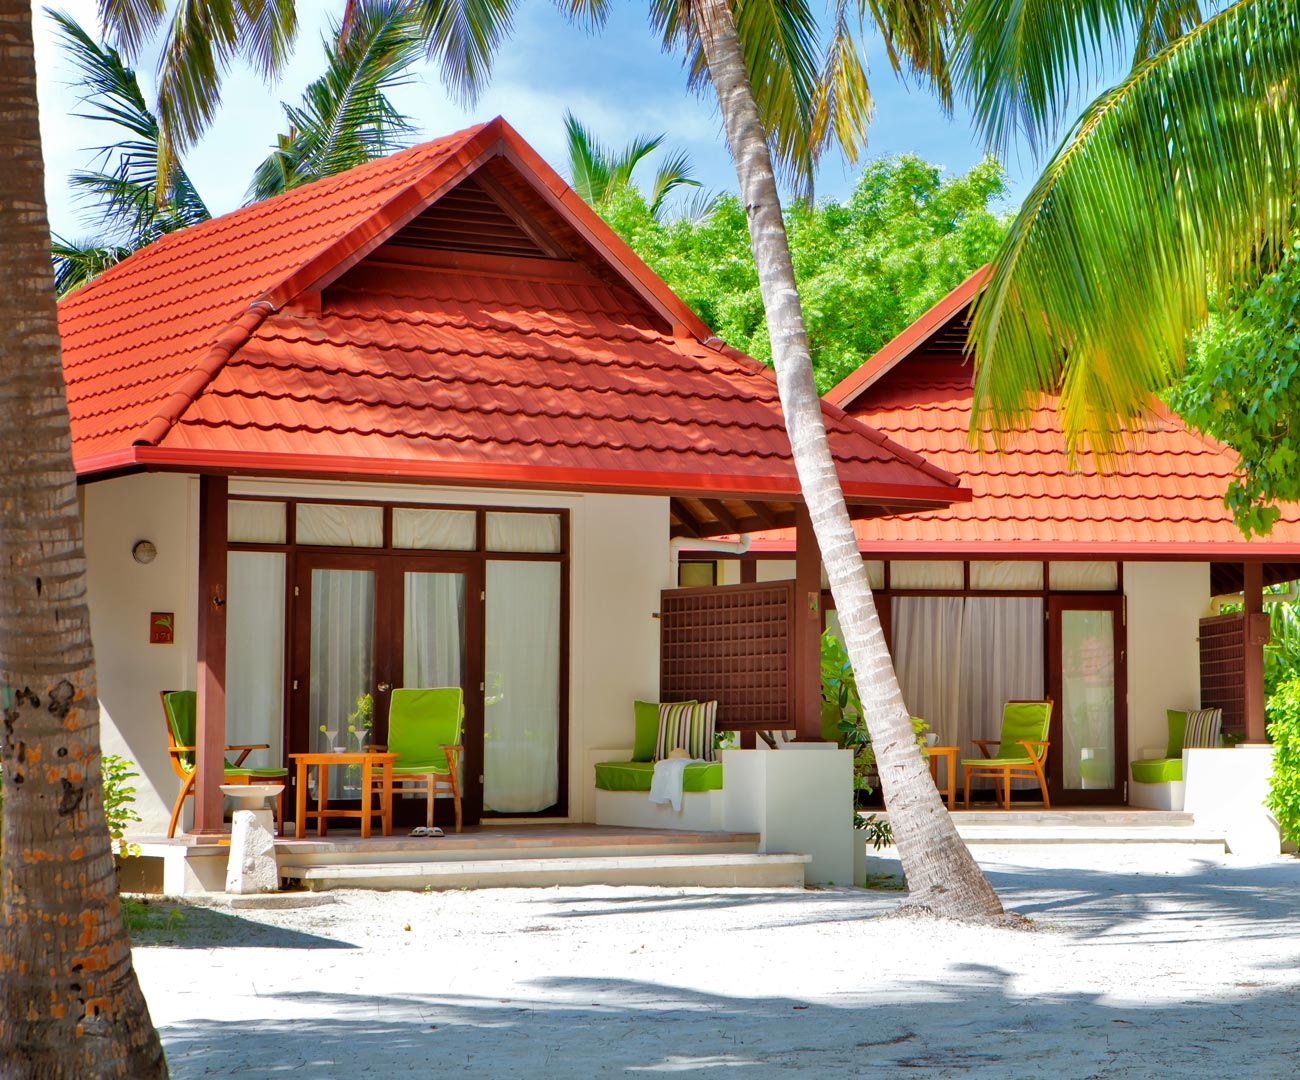 bungalows maldives kurumba maldives resort deluxe bungalows. Black Bedroom Furniture Sets. Home Design Ideas